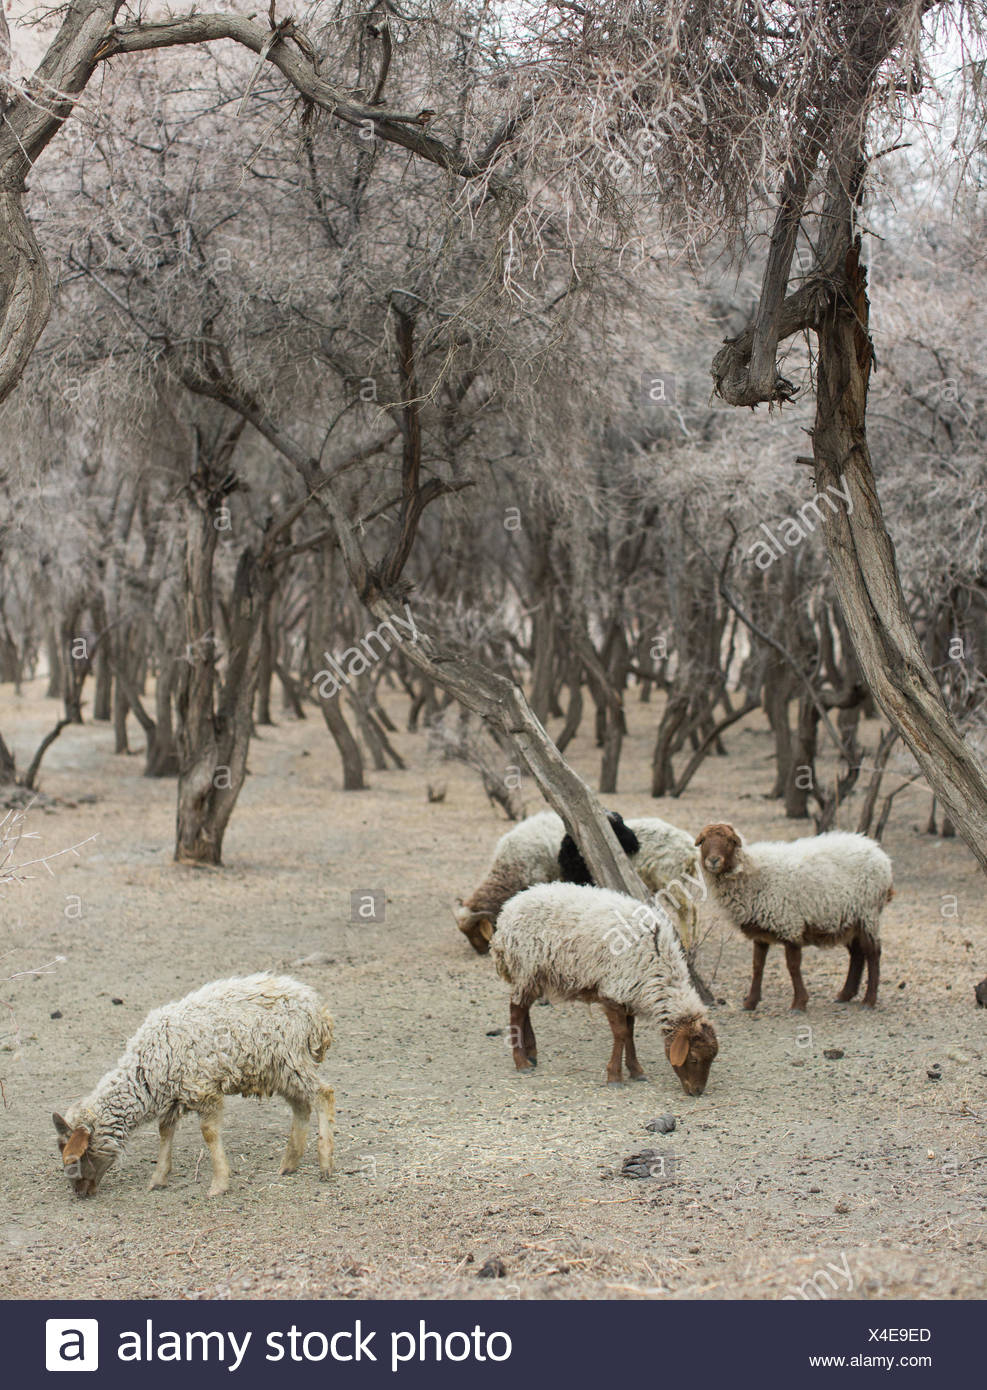 Sheep in a forest in near one of the remotest villages in the Karakoram mountains. - Stock Image